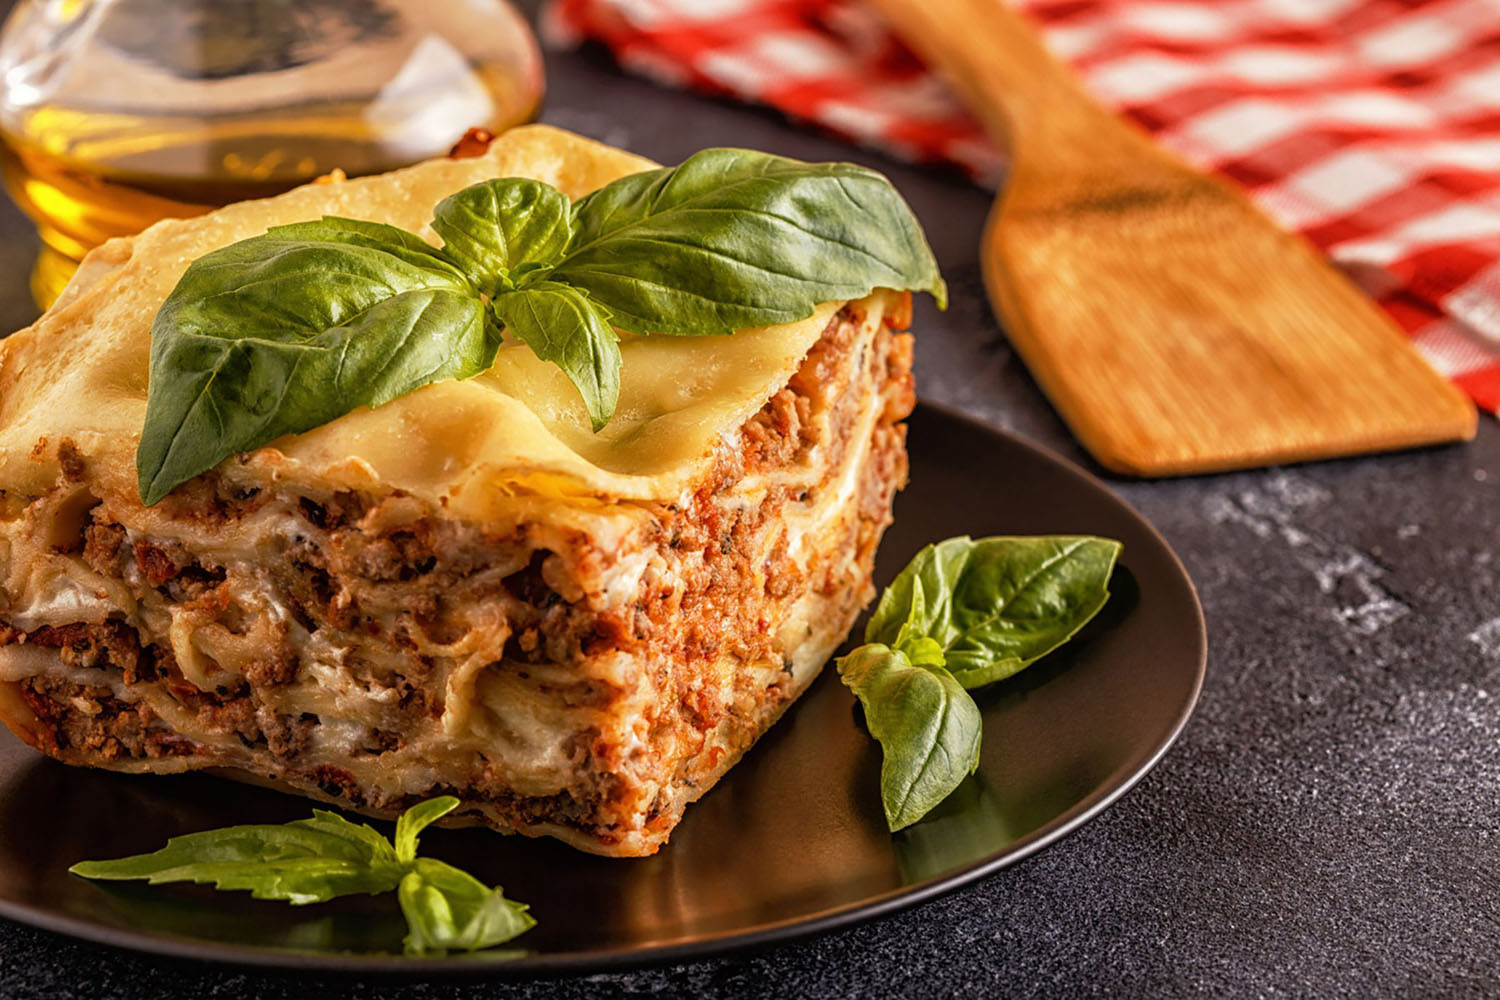 Vincisgrassi made with minced beef bolognese sauce and bechamel sauce